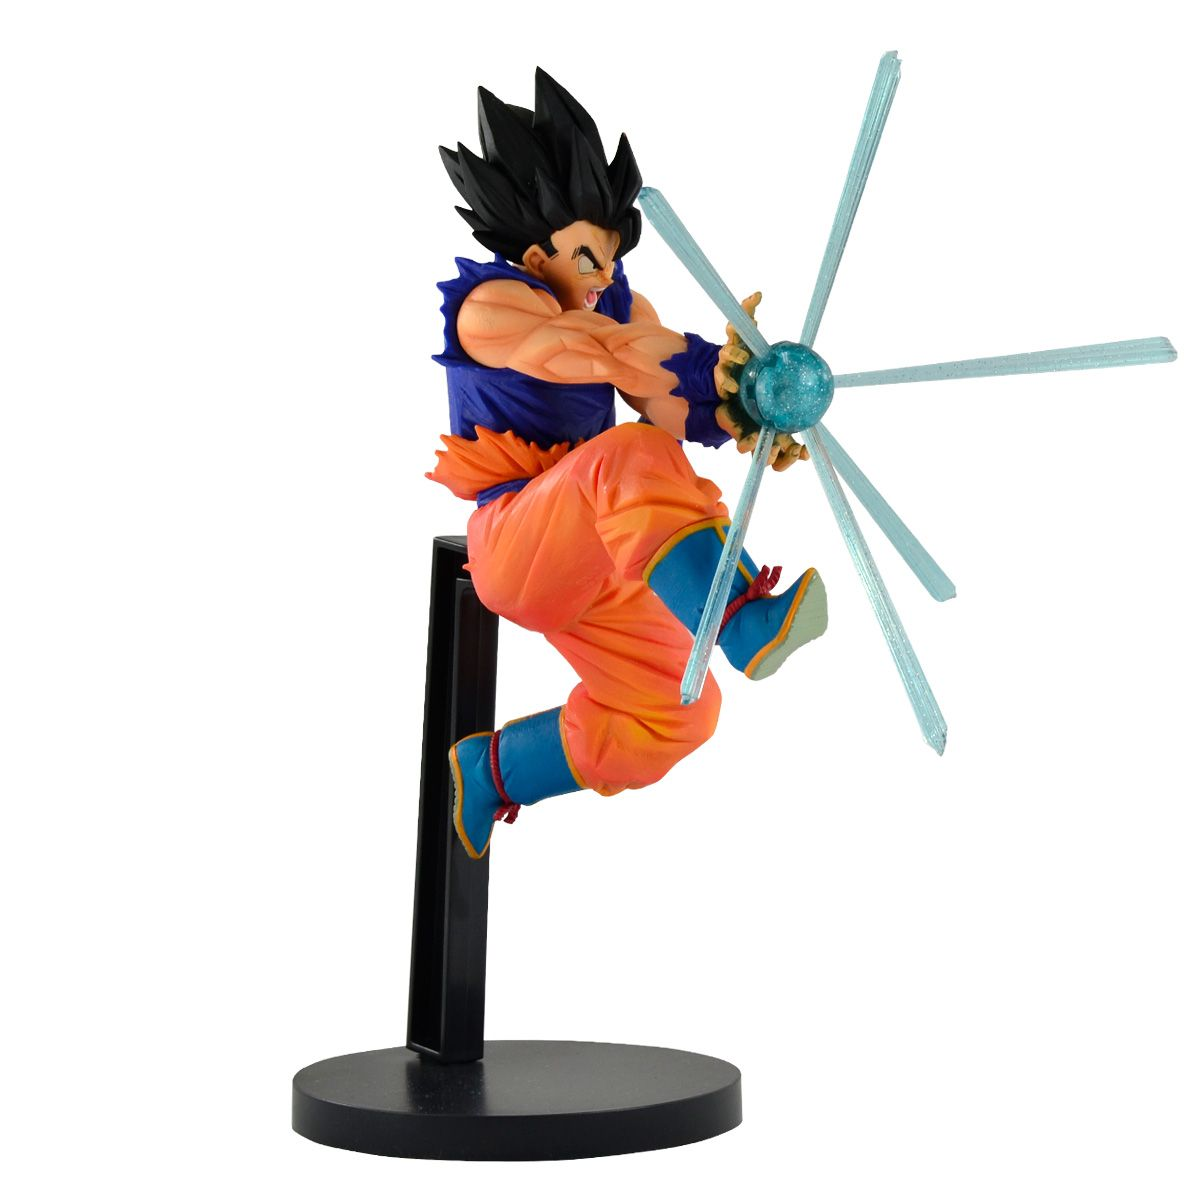 Son Goku G X Materia Dragon Ball Z - Bandai Banpresto